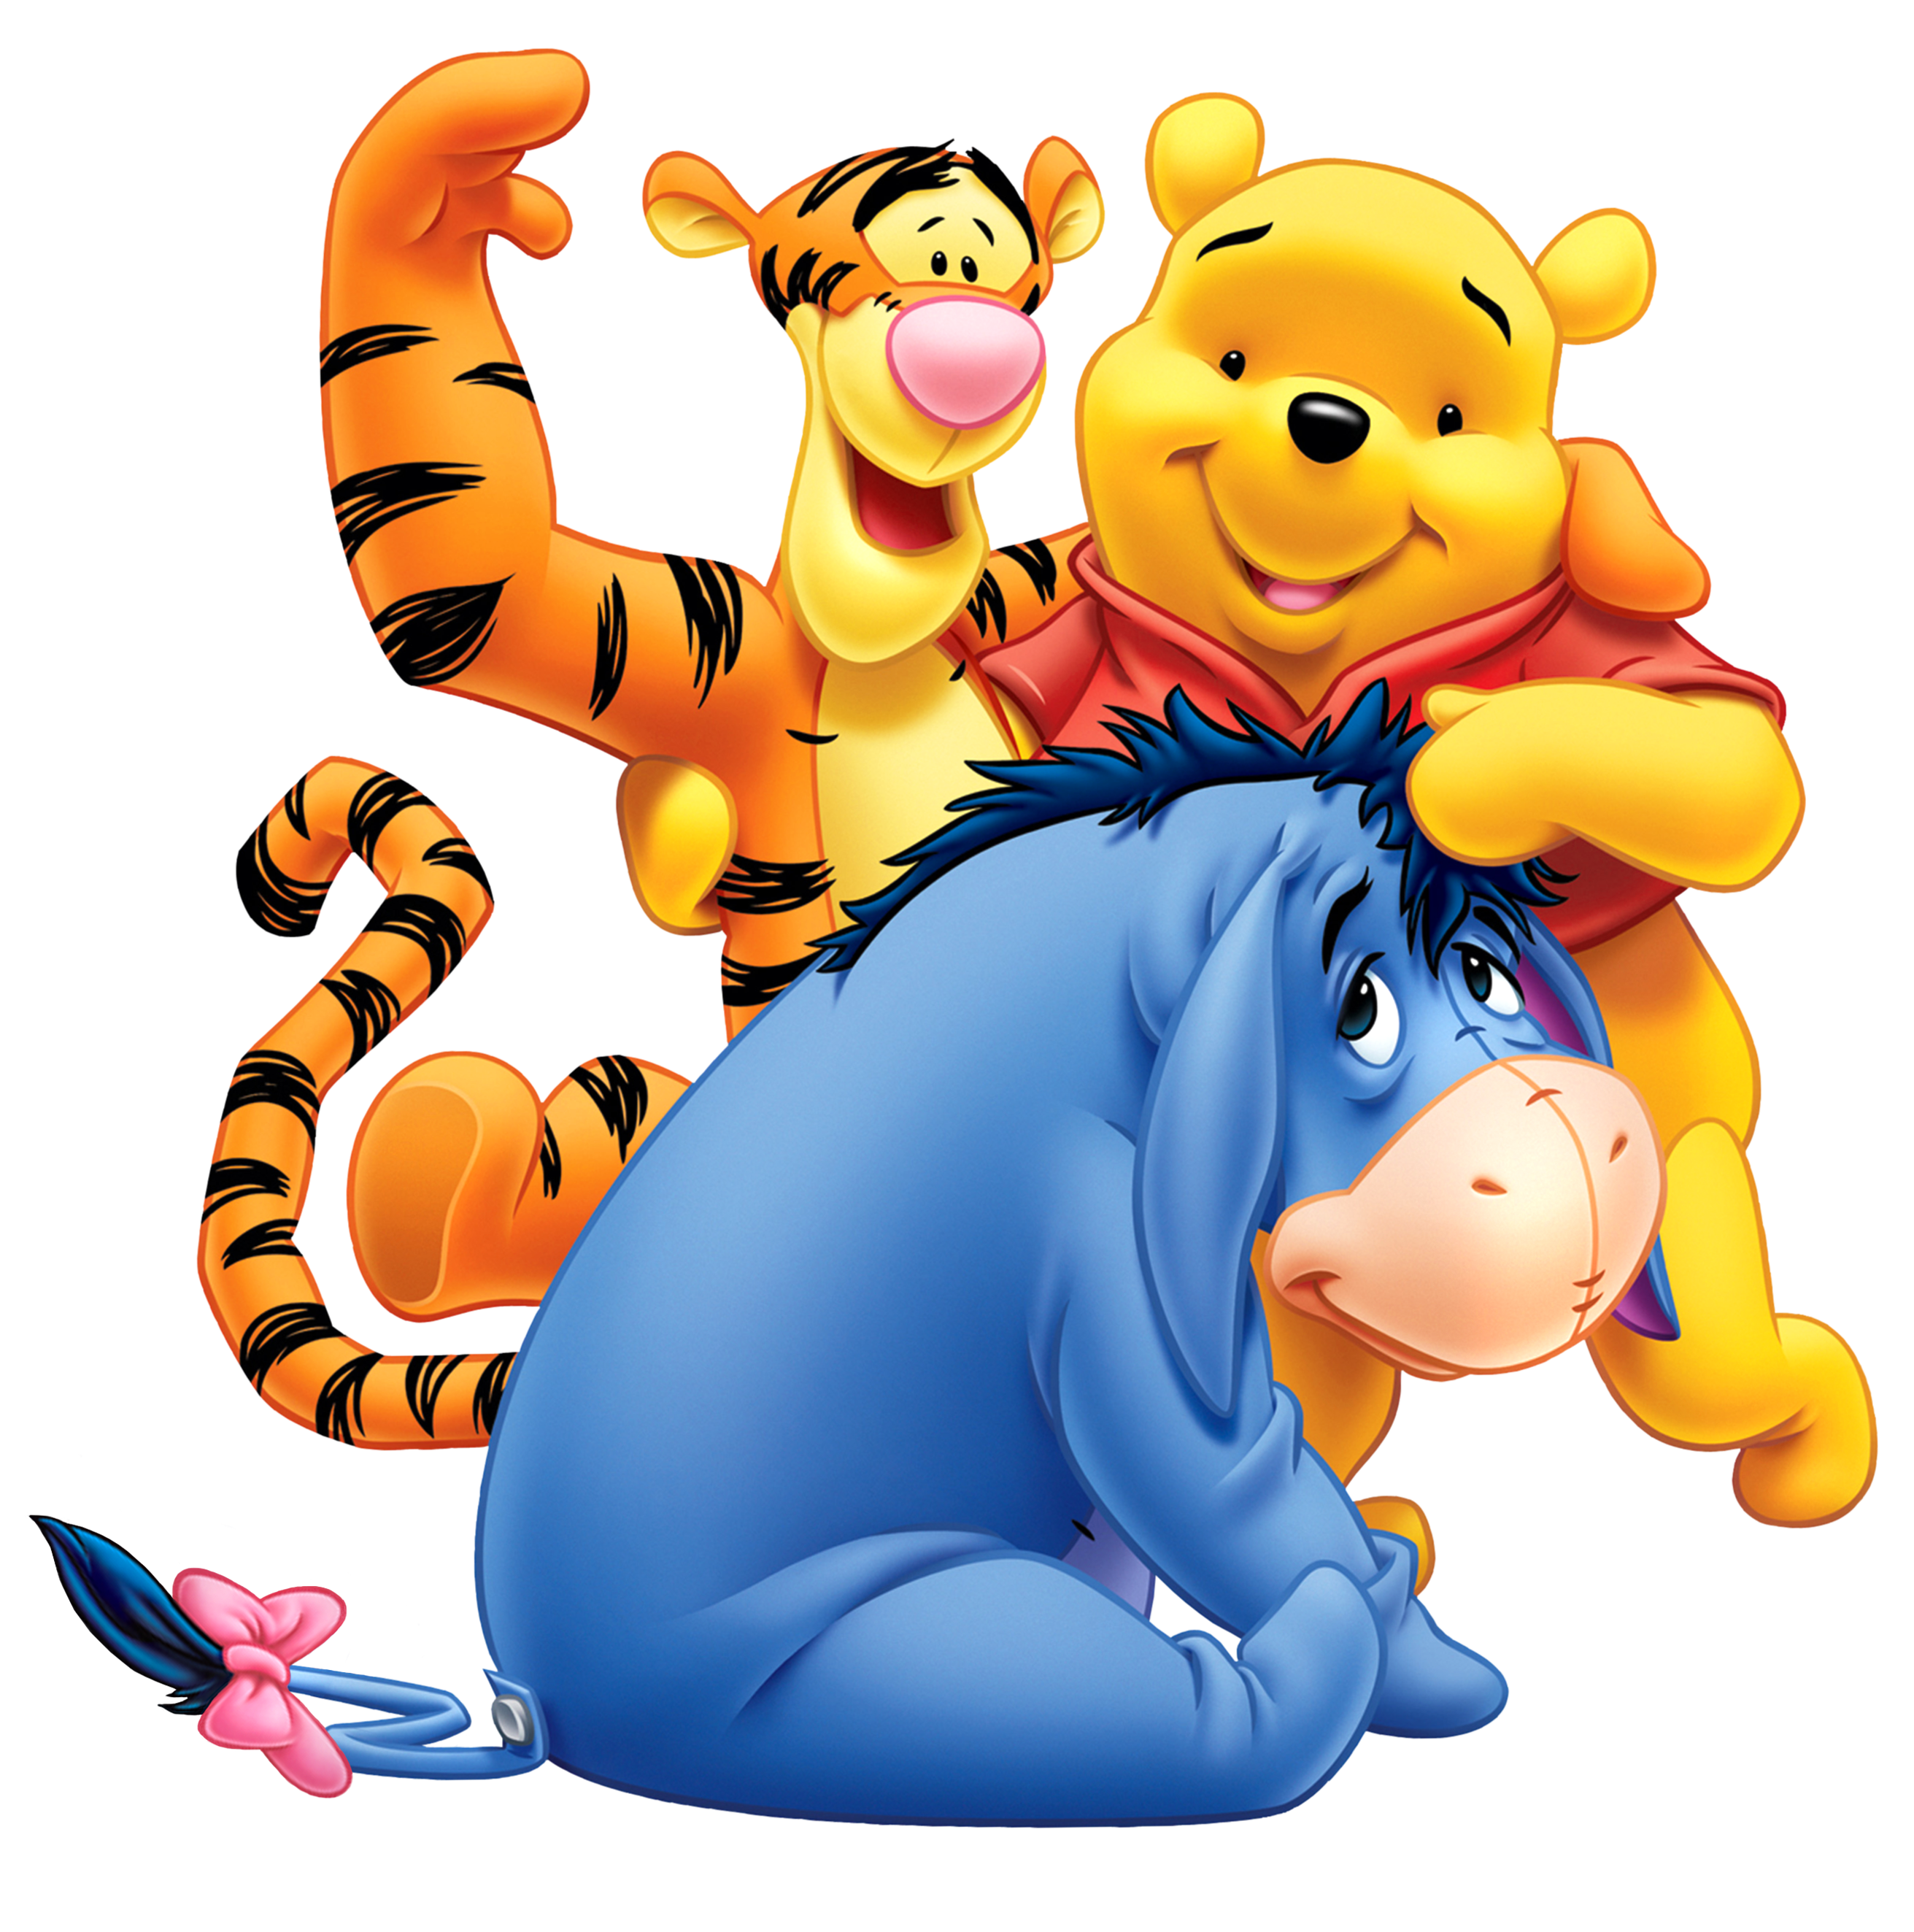 House burning down clipart black and white library Winnie the Pooh Eeyore and Tiger Transparent PNG Clip Art Image ... black and white library